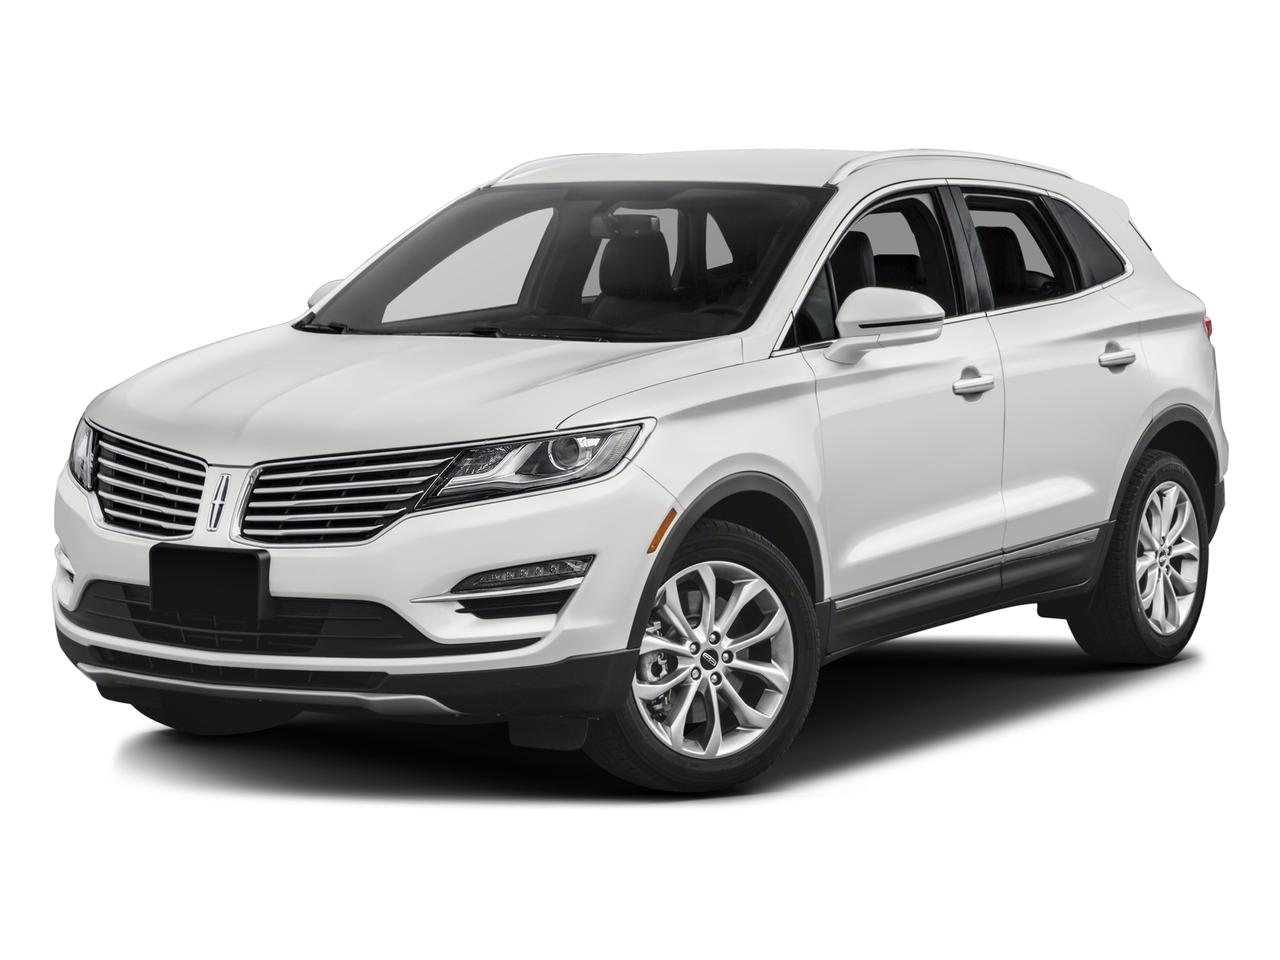 2017 LINCOLN MKC Vehicle Photo in Elyria, OH 44035